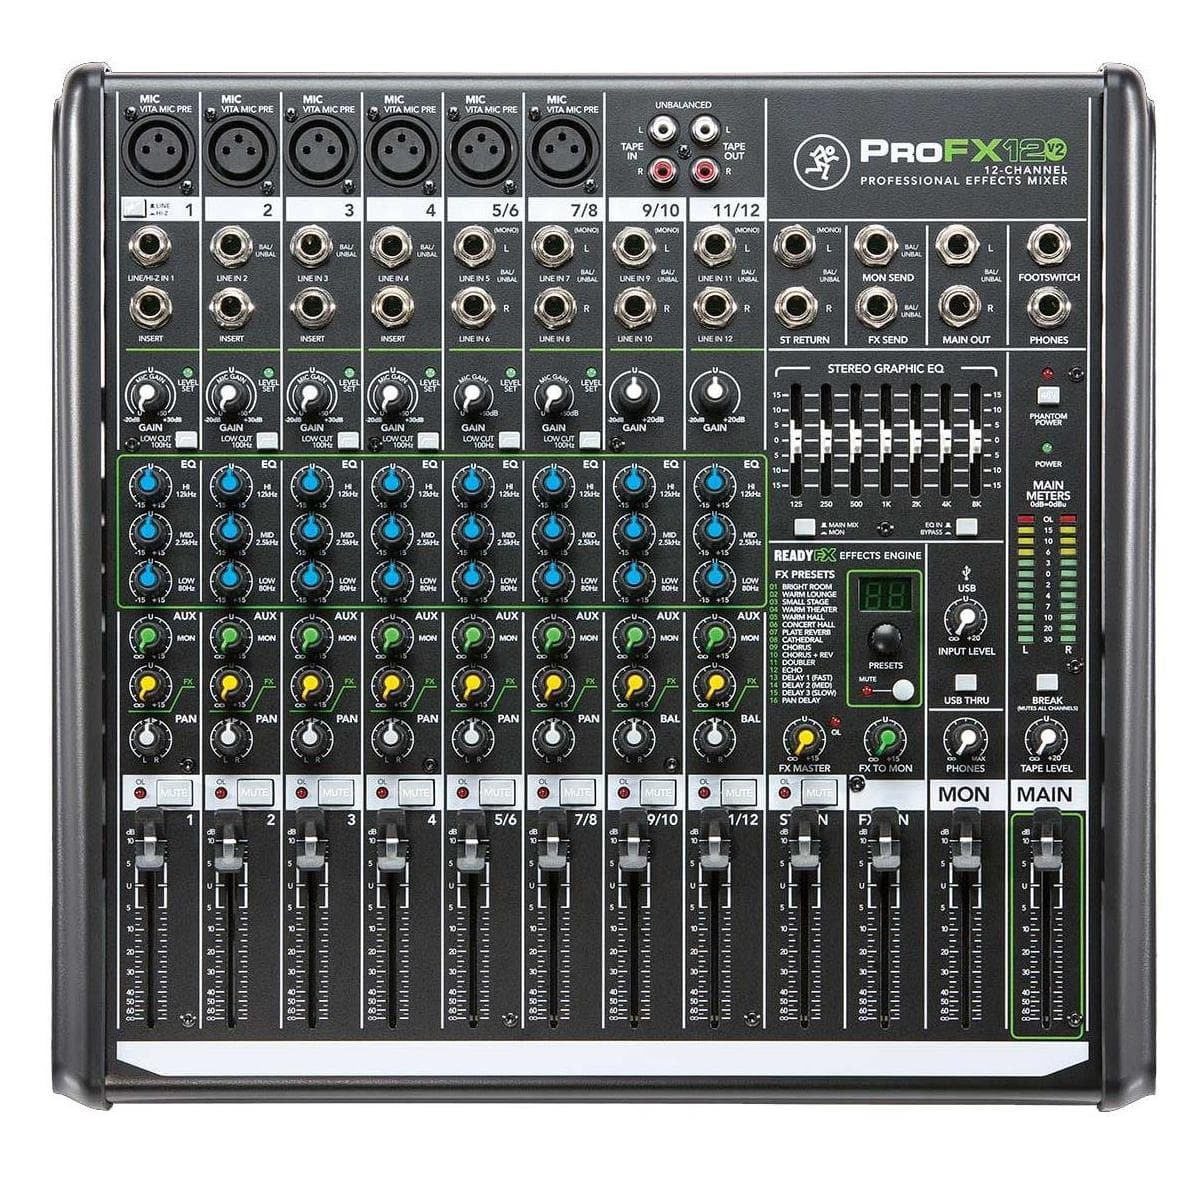 Mackie Professional FX Mixers: ProFX12v2 $170 or ProFX8v2  $130 after $30 Rebate + Free S&H